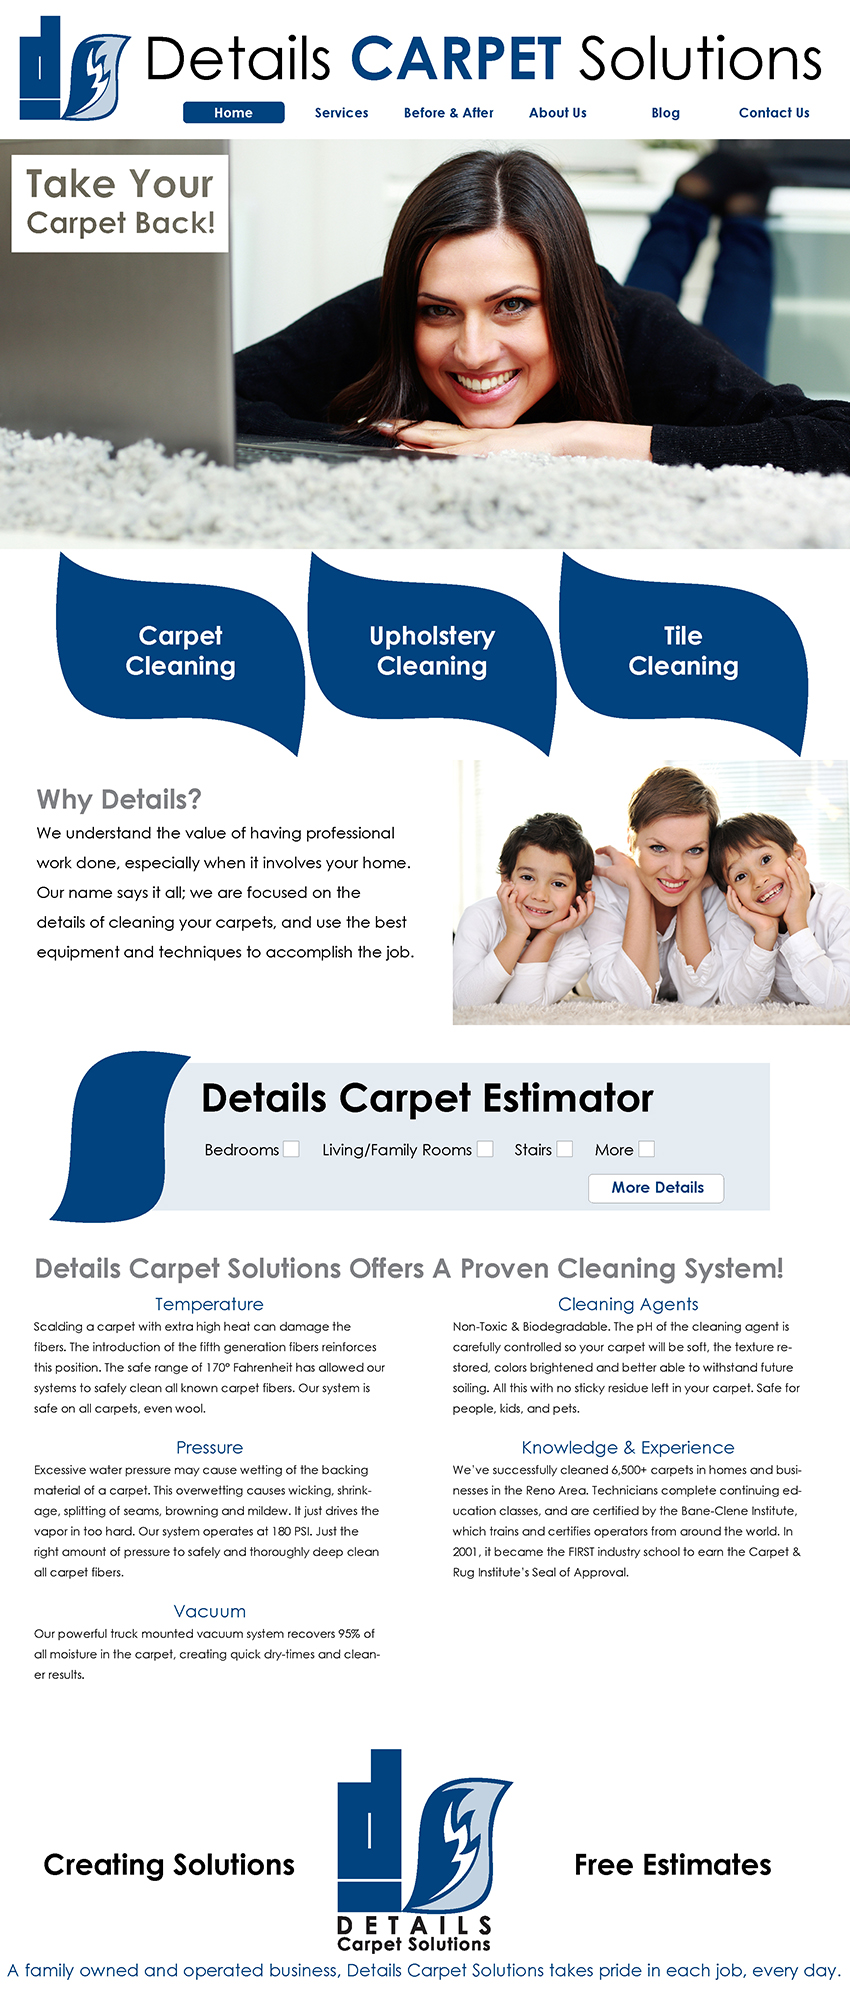 Details Carpet Solutions